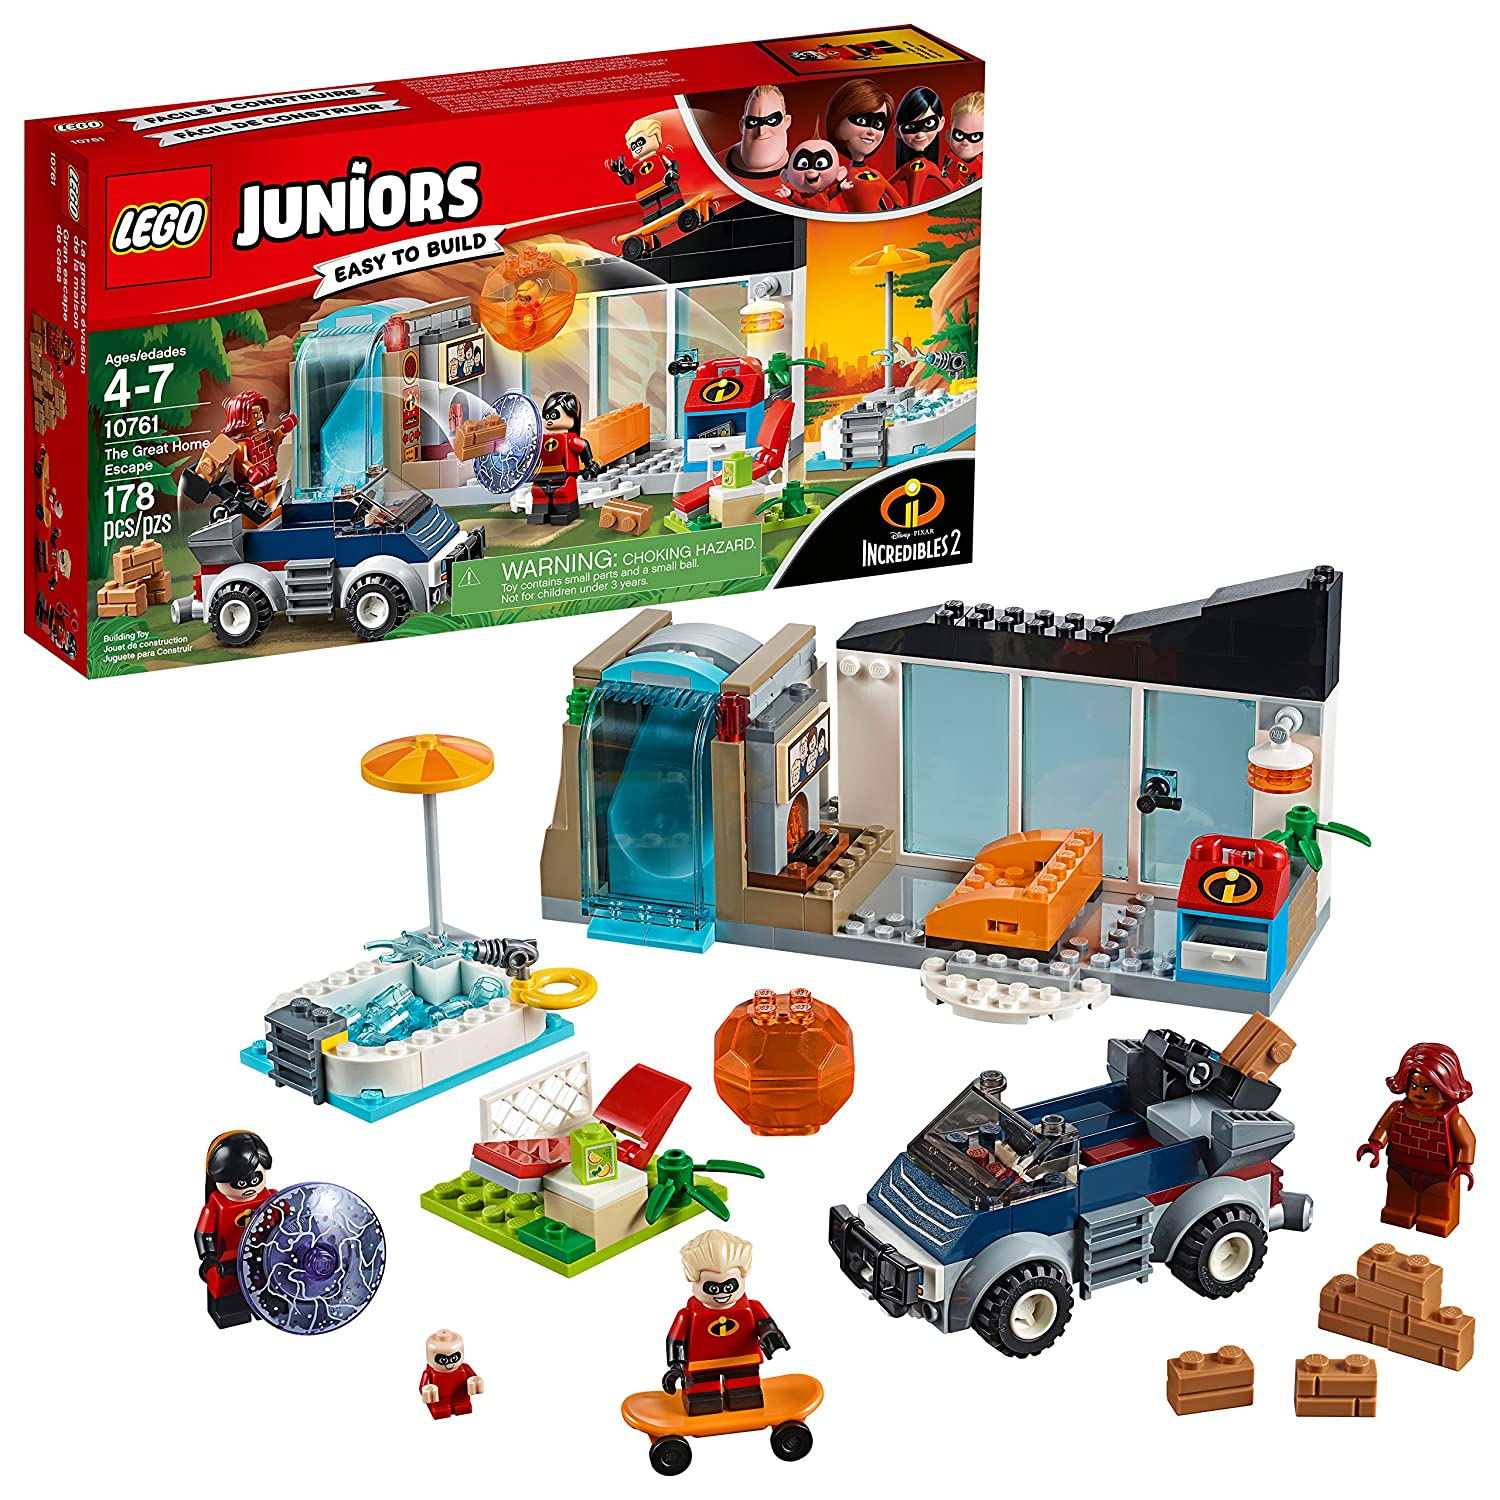 LEGO Juniors/4+ The Incredibles 2 The Great Home Escape 10761 Building Kit (178 Piece) 6213862